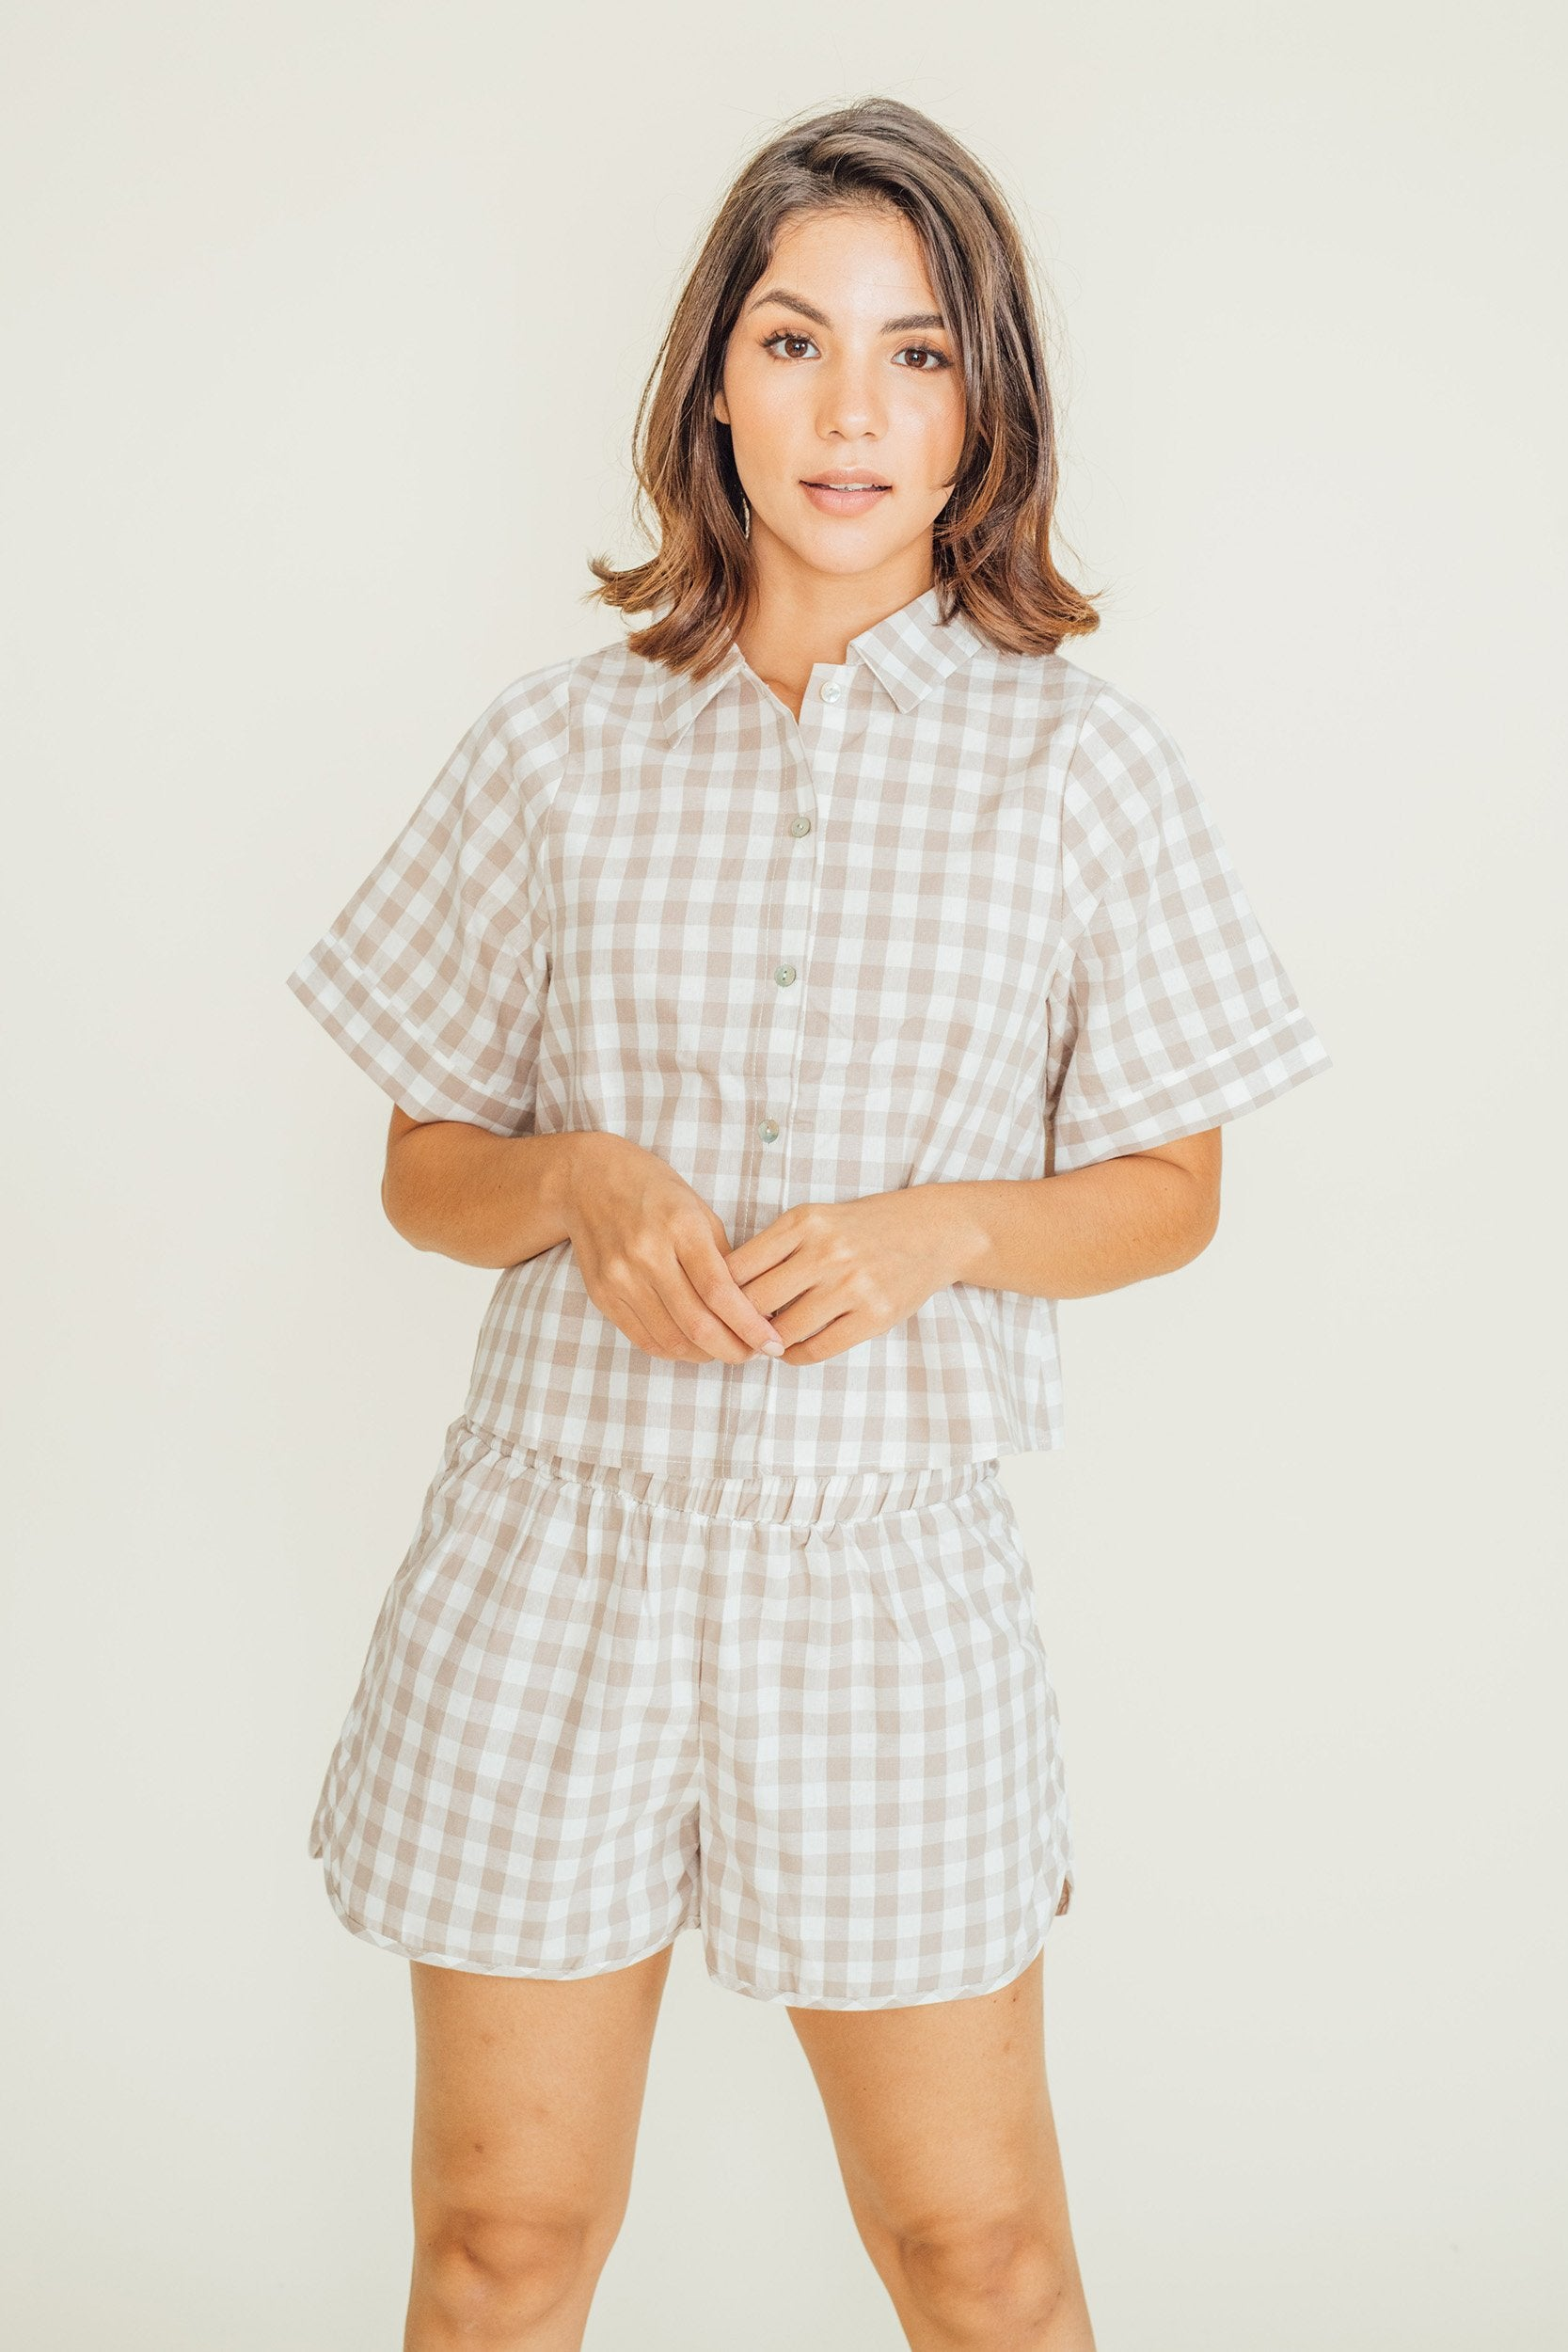 Aleha Polo and Shorts Set